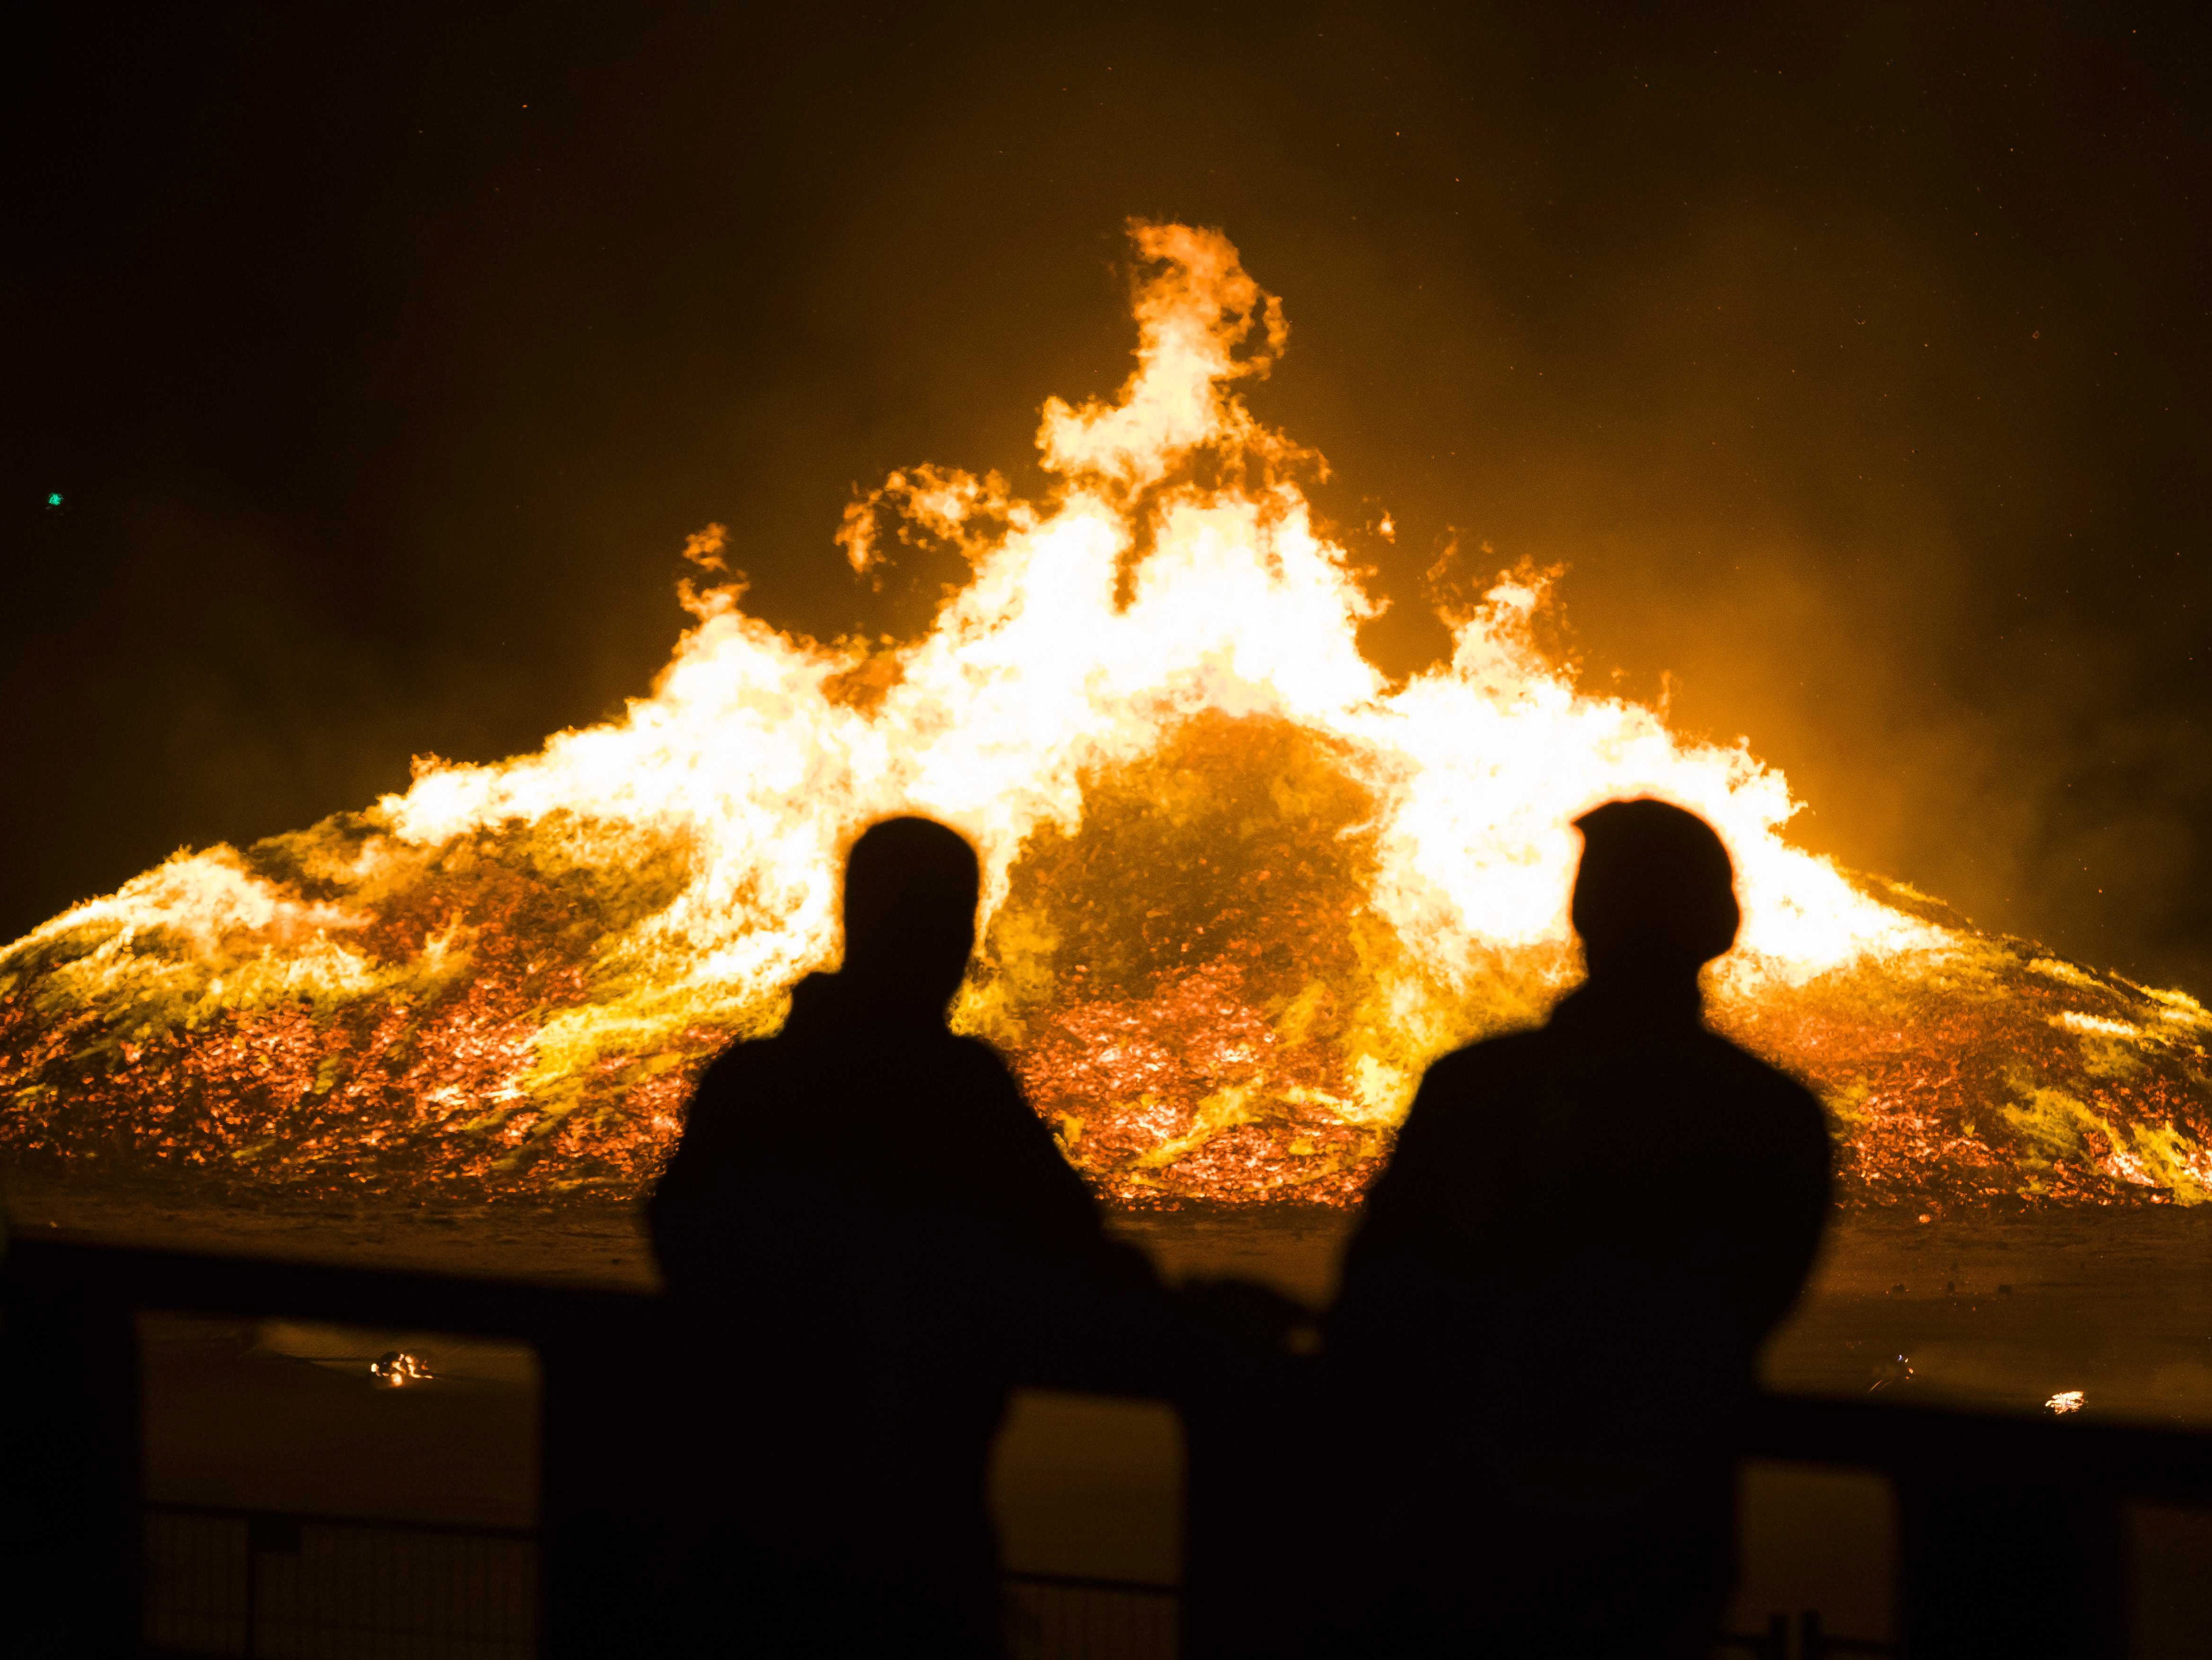 People look at a bonfire on the beach set up to celebrate the turn of the year on New Year's Eve, in Scheveningen, coastal district of The Hague, Netherlands on Jan. 1, 2019. The bonfire got out of control as ash was blown from a bonfire towards spectators and homes in a near district.